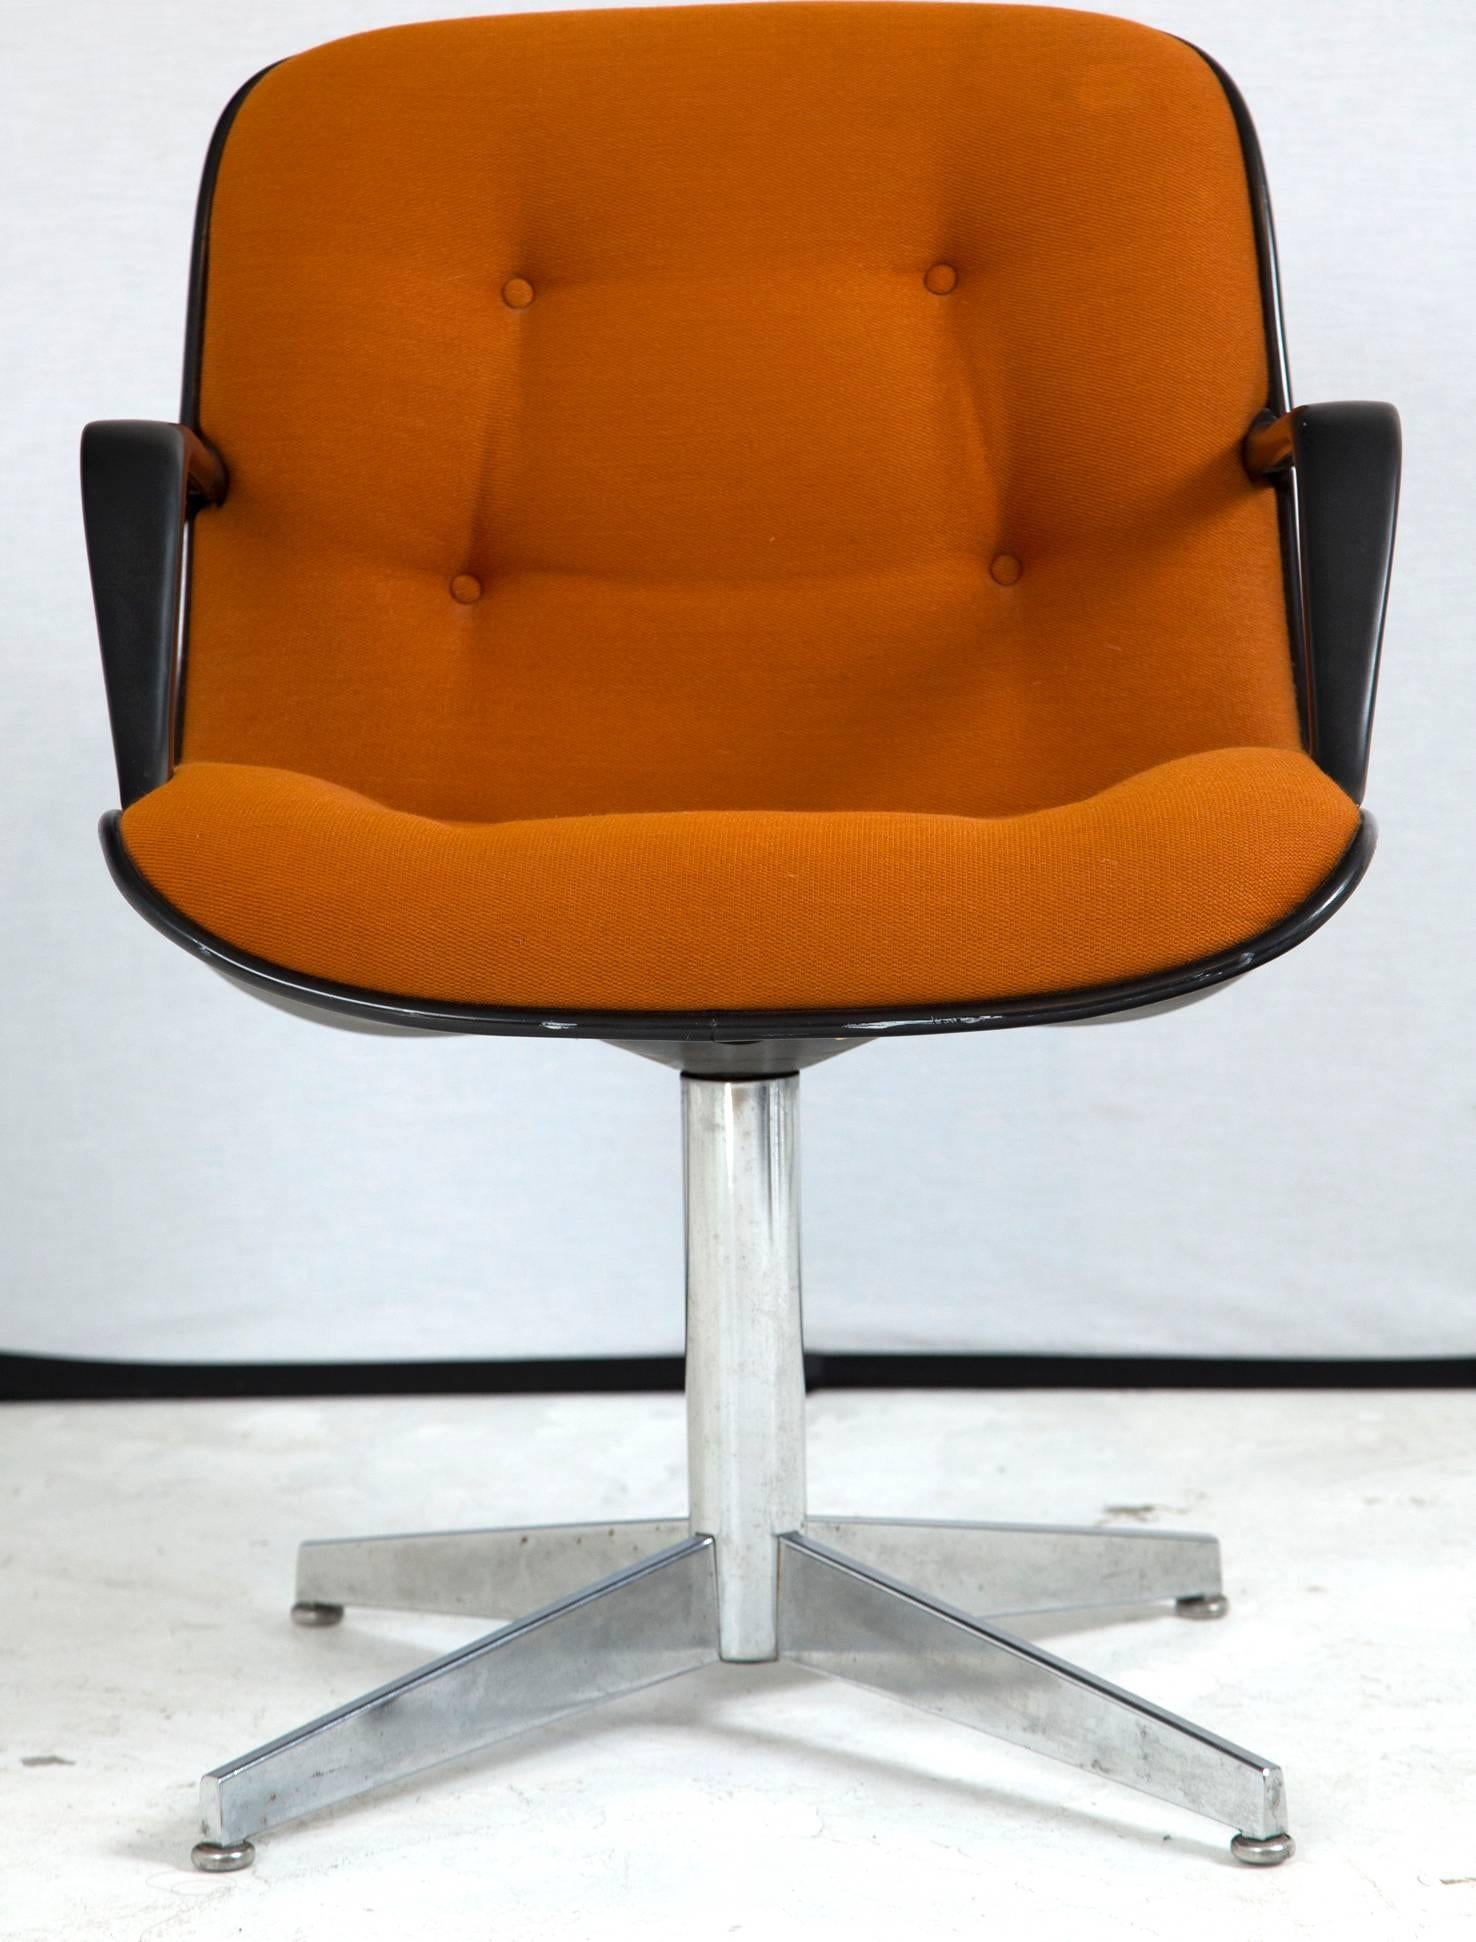 Vintage Steelcase Office Chair 2 For Sale On 1stdibs